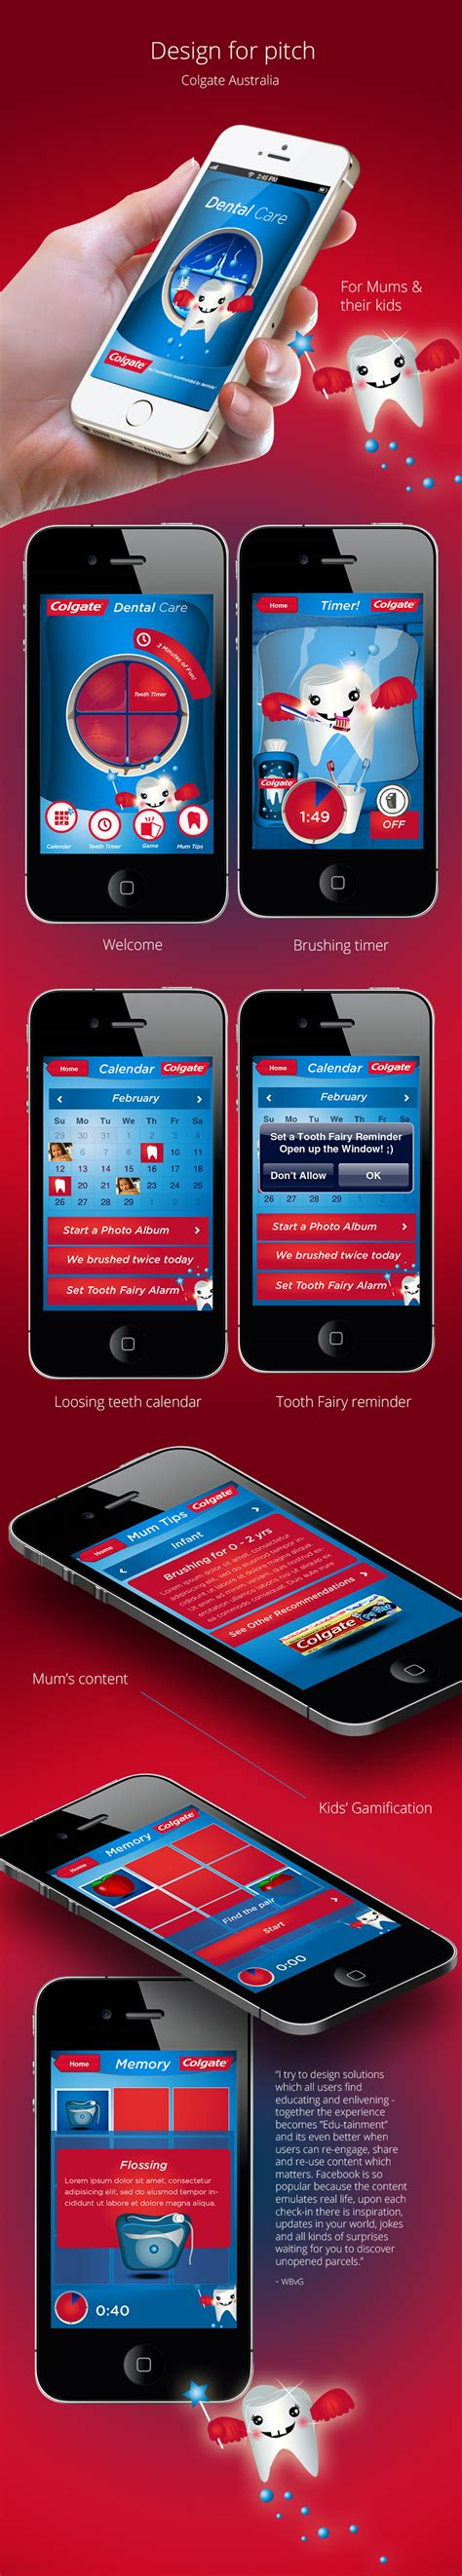 Hcd 101 Digital Ux Design colgate tooth app sendinthefox mobile experience